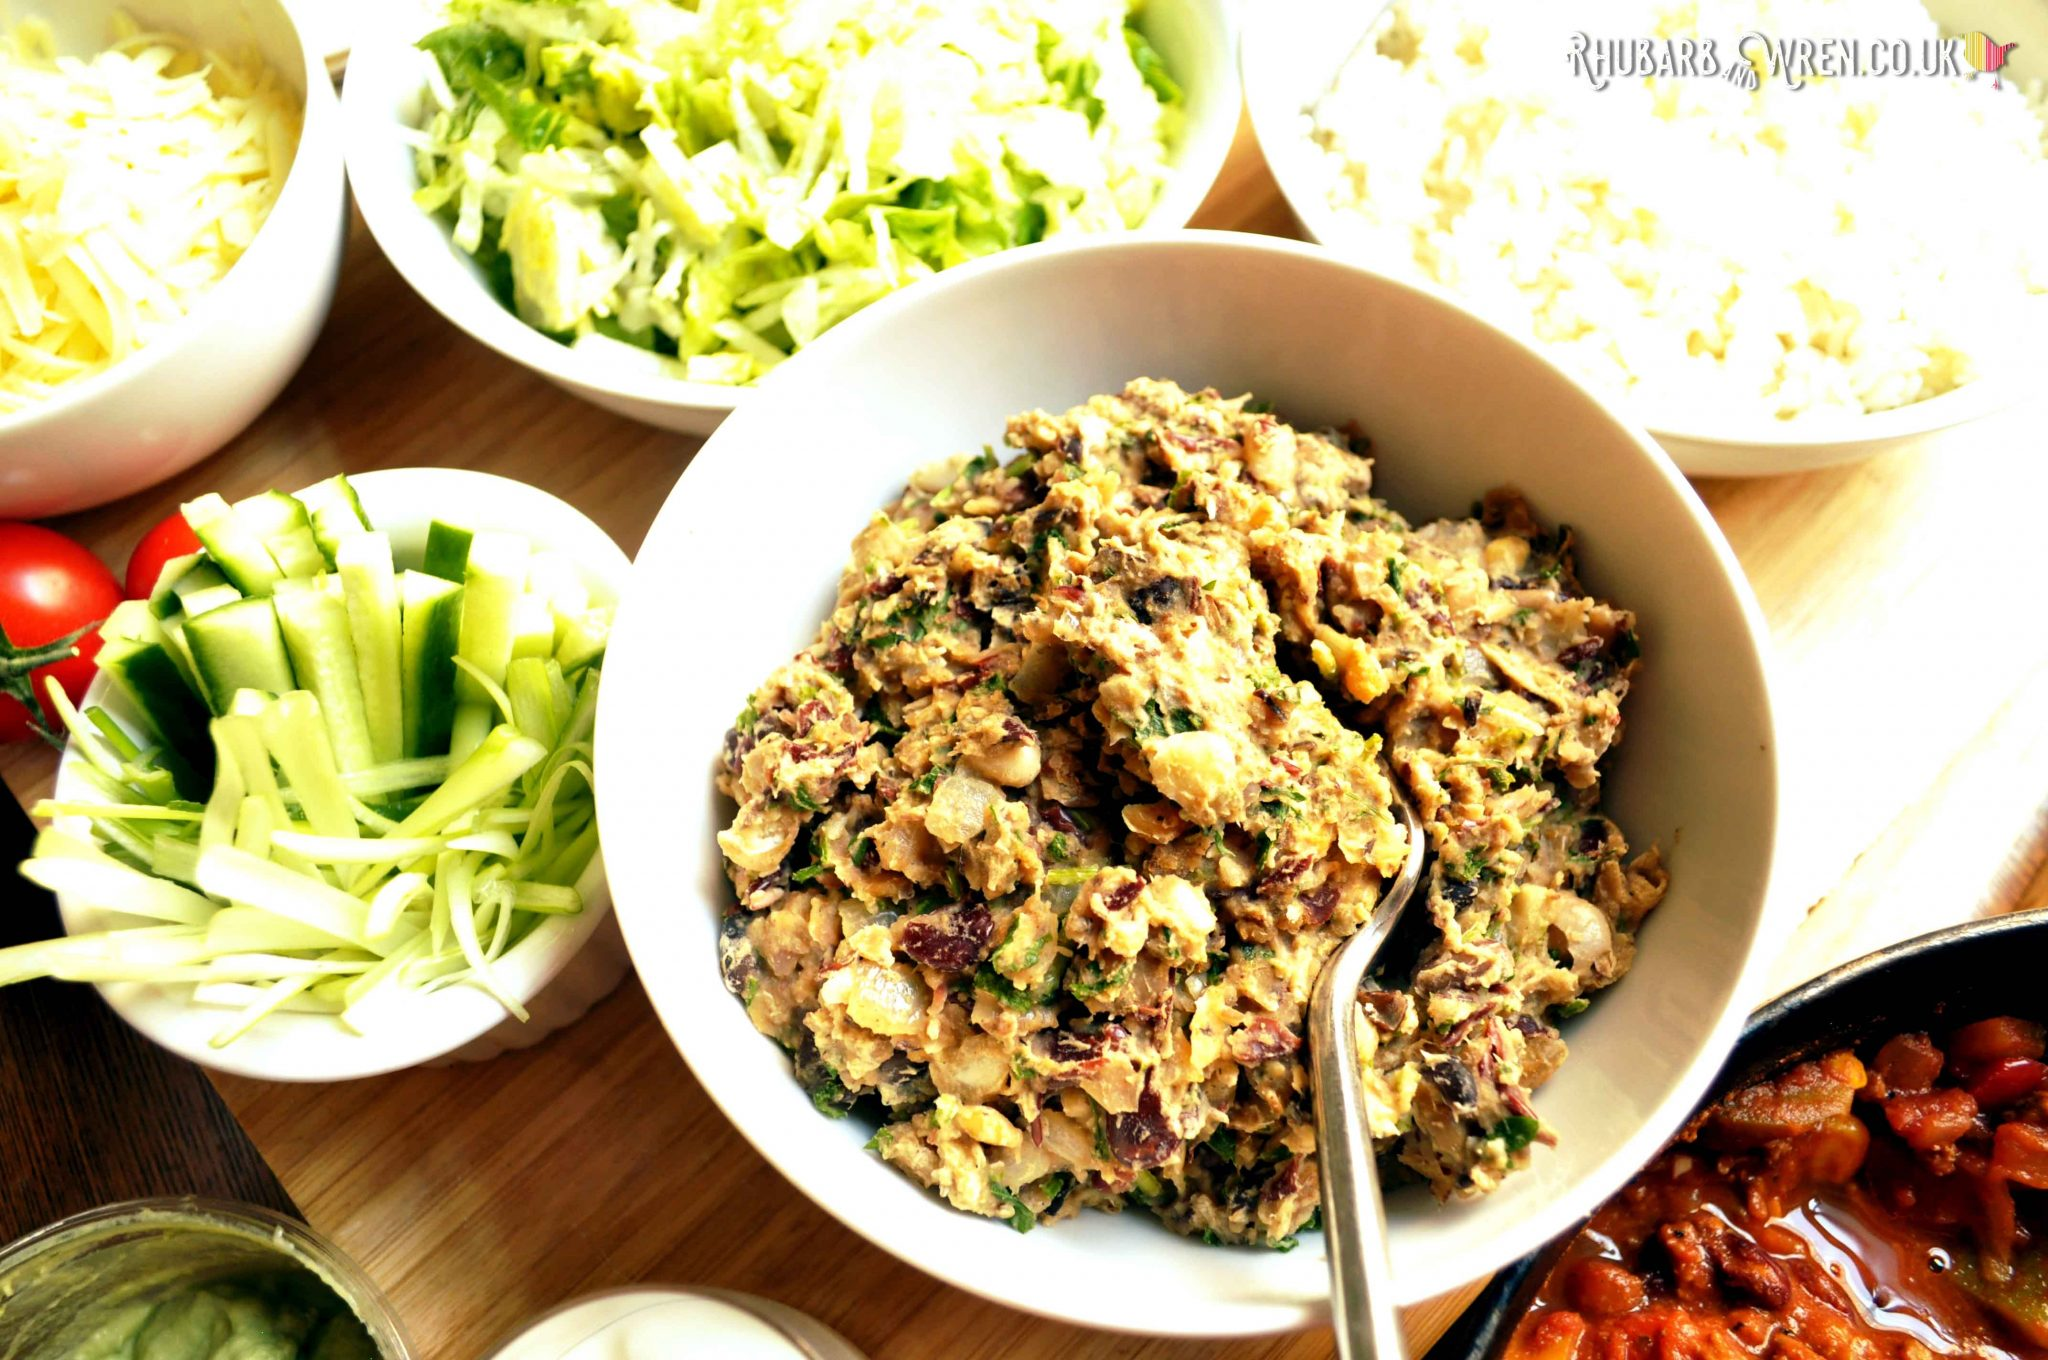 homemade refried beans as a sidedish or topping for a chilli recipe